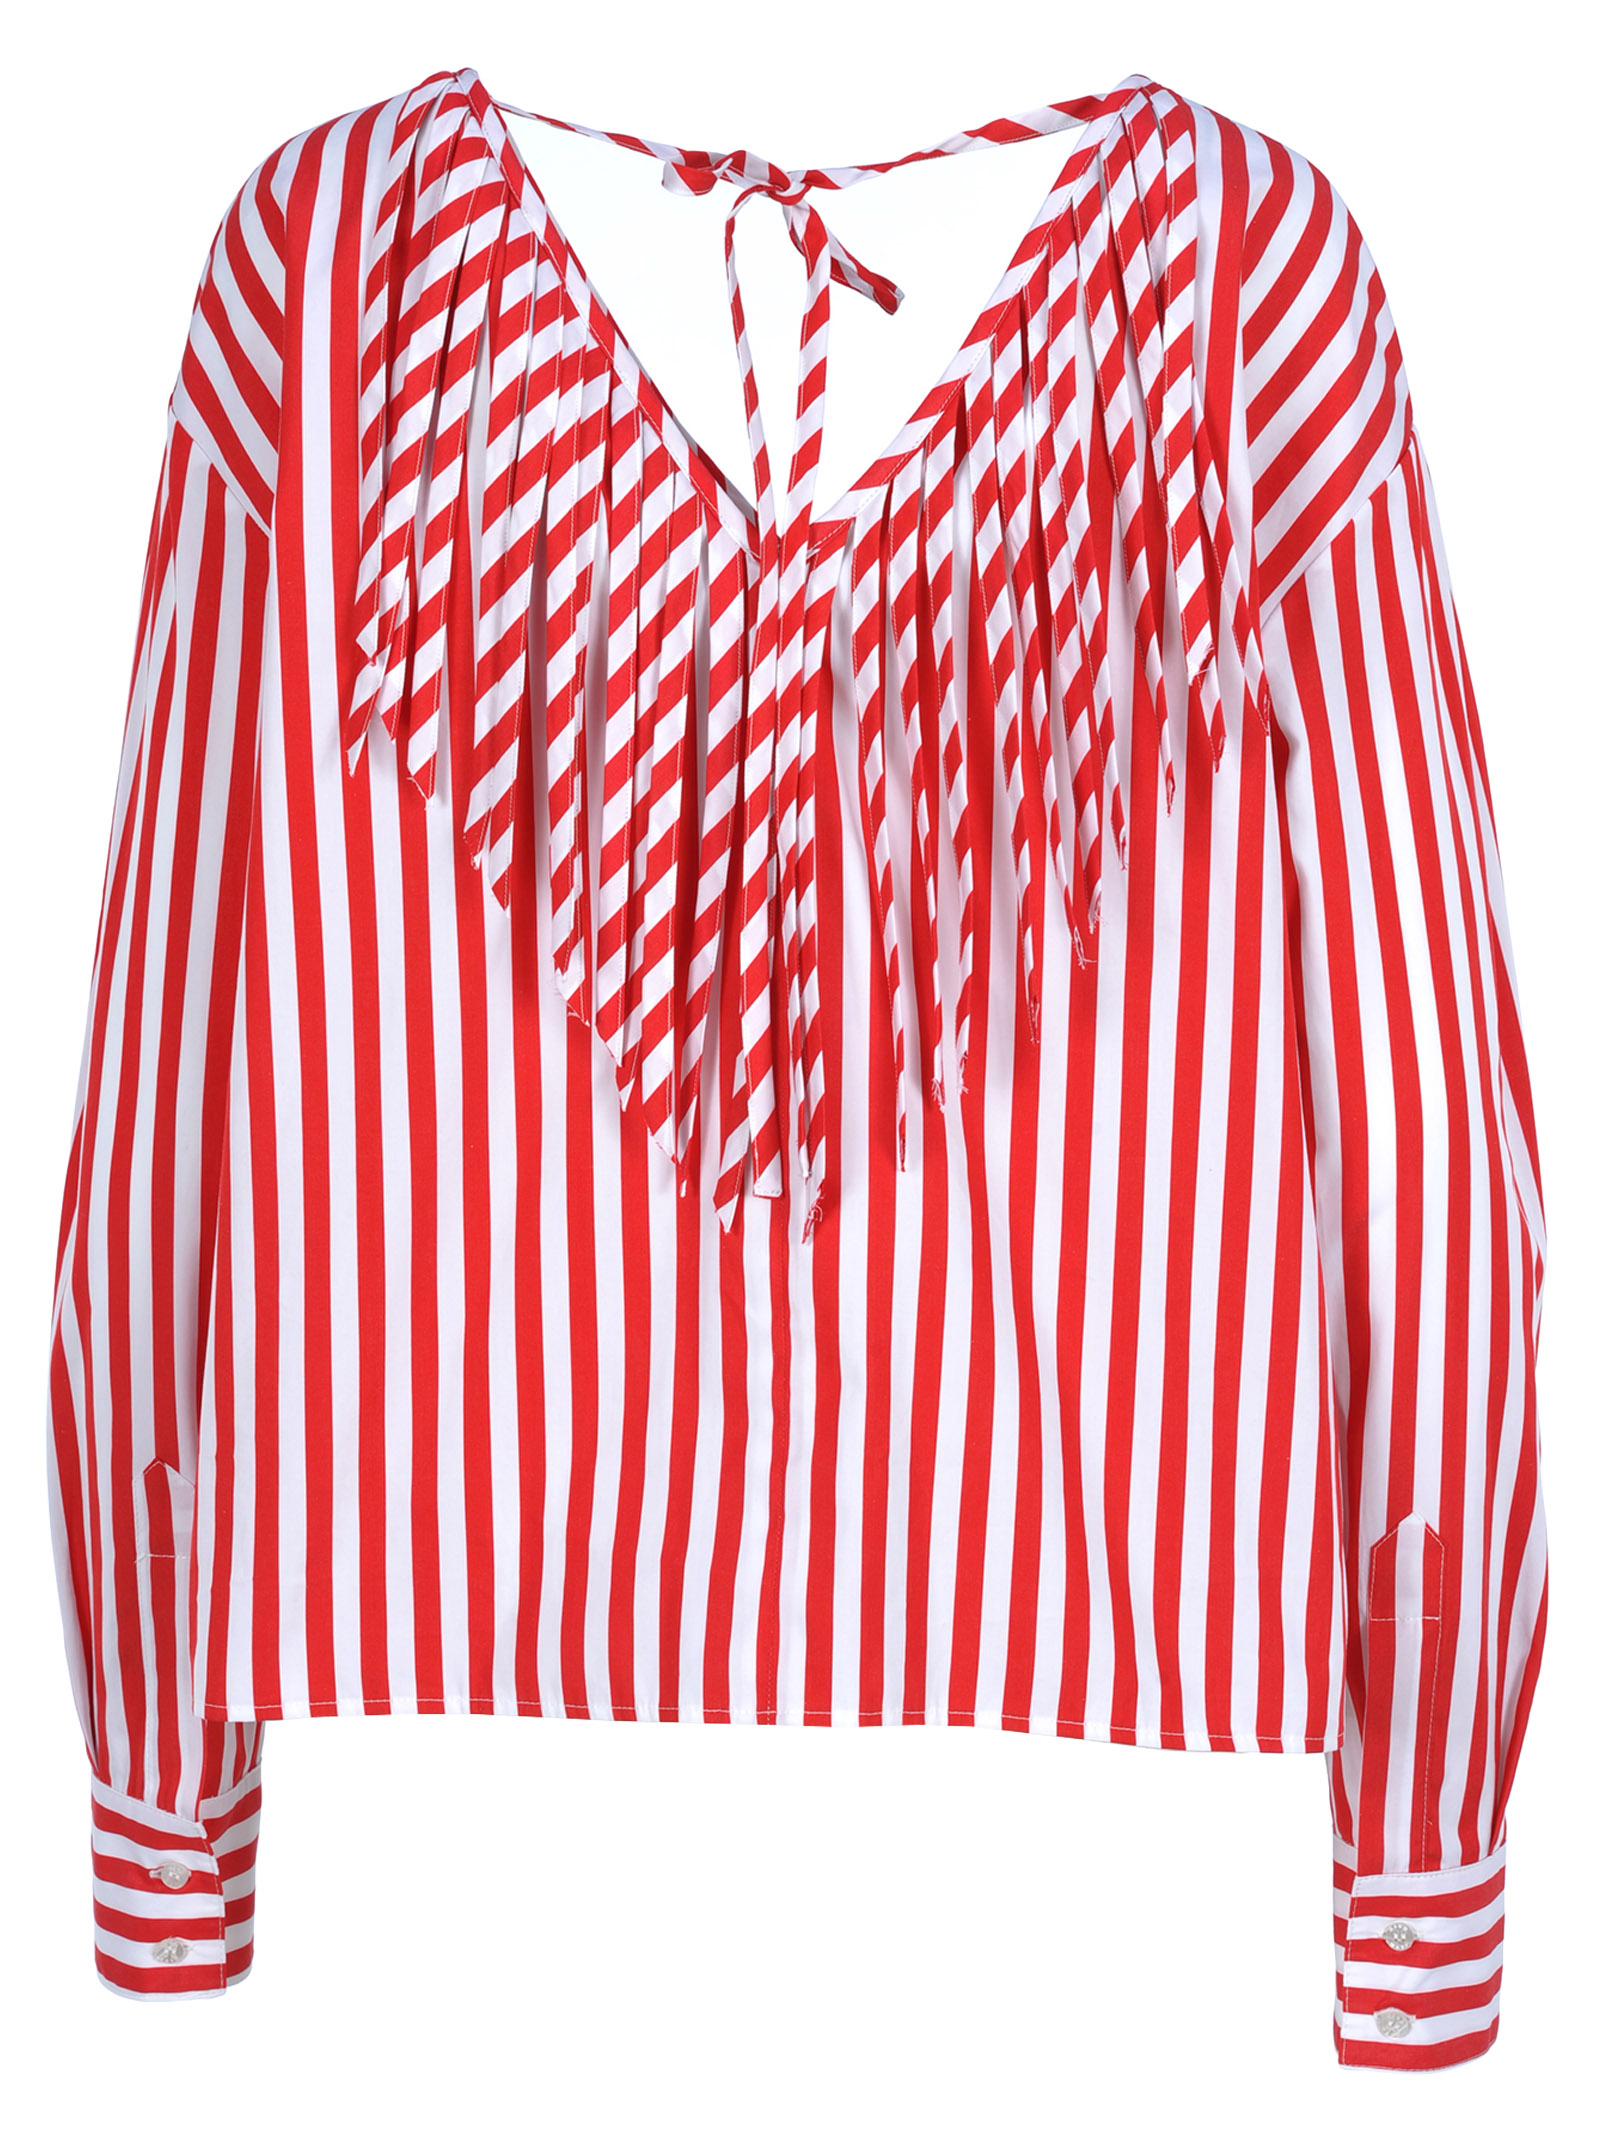 b7d3df3ff2c64b Msgm Women's Clothing Tops - MDM35111 | Made in Italy | Red White | eBay